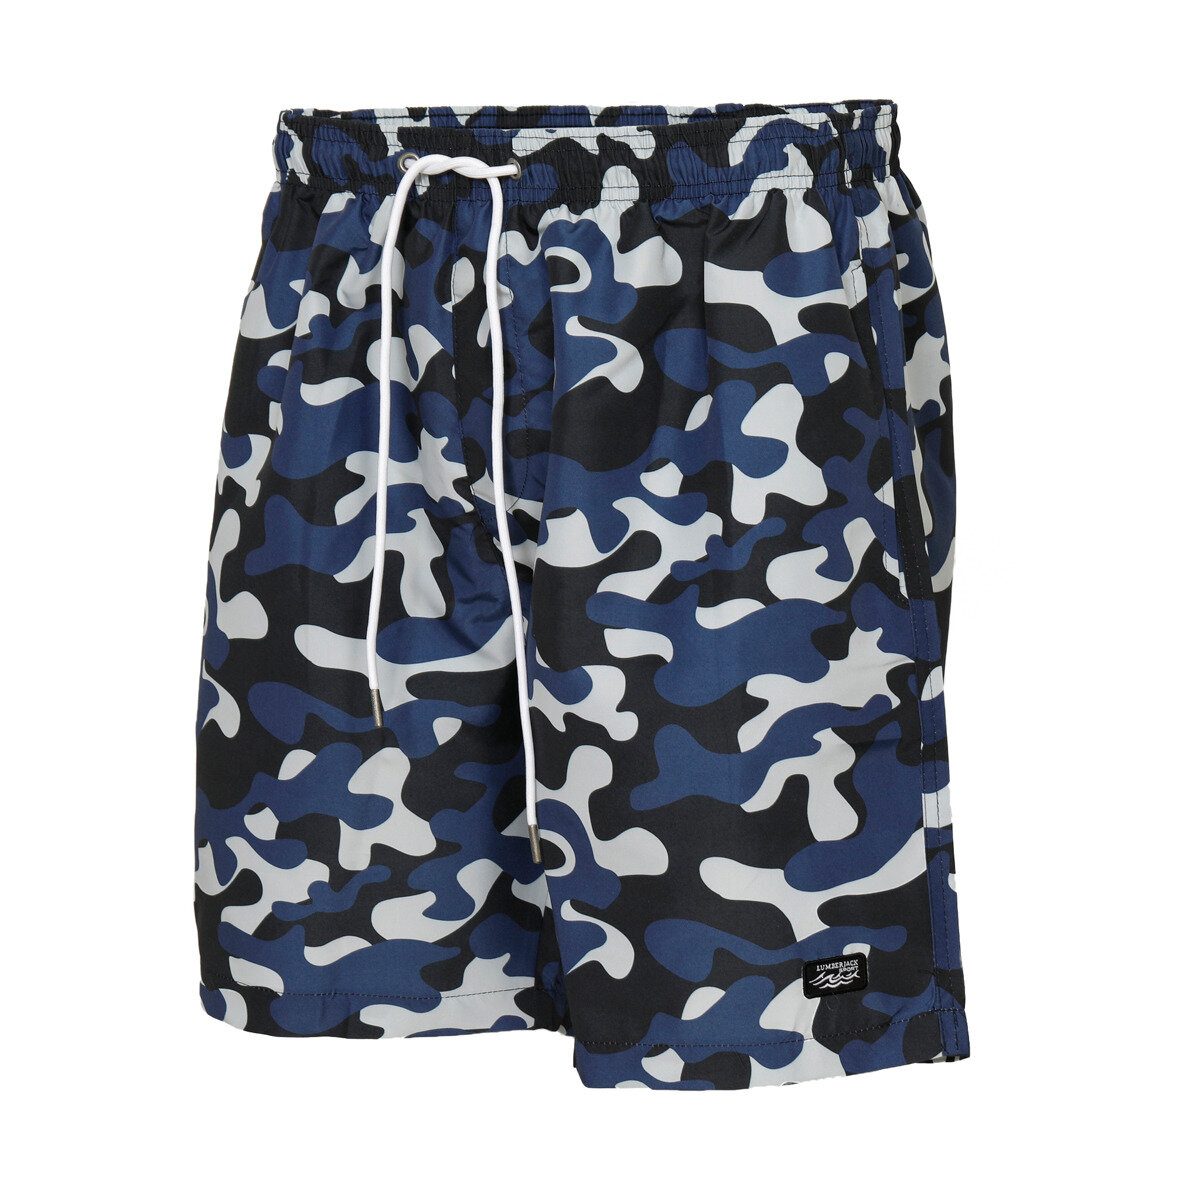 FLO M-1660 CATE SEA SORTU Camouflage Color Male Sea Shorts LUMBERJACK